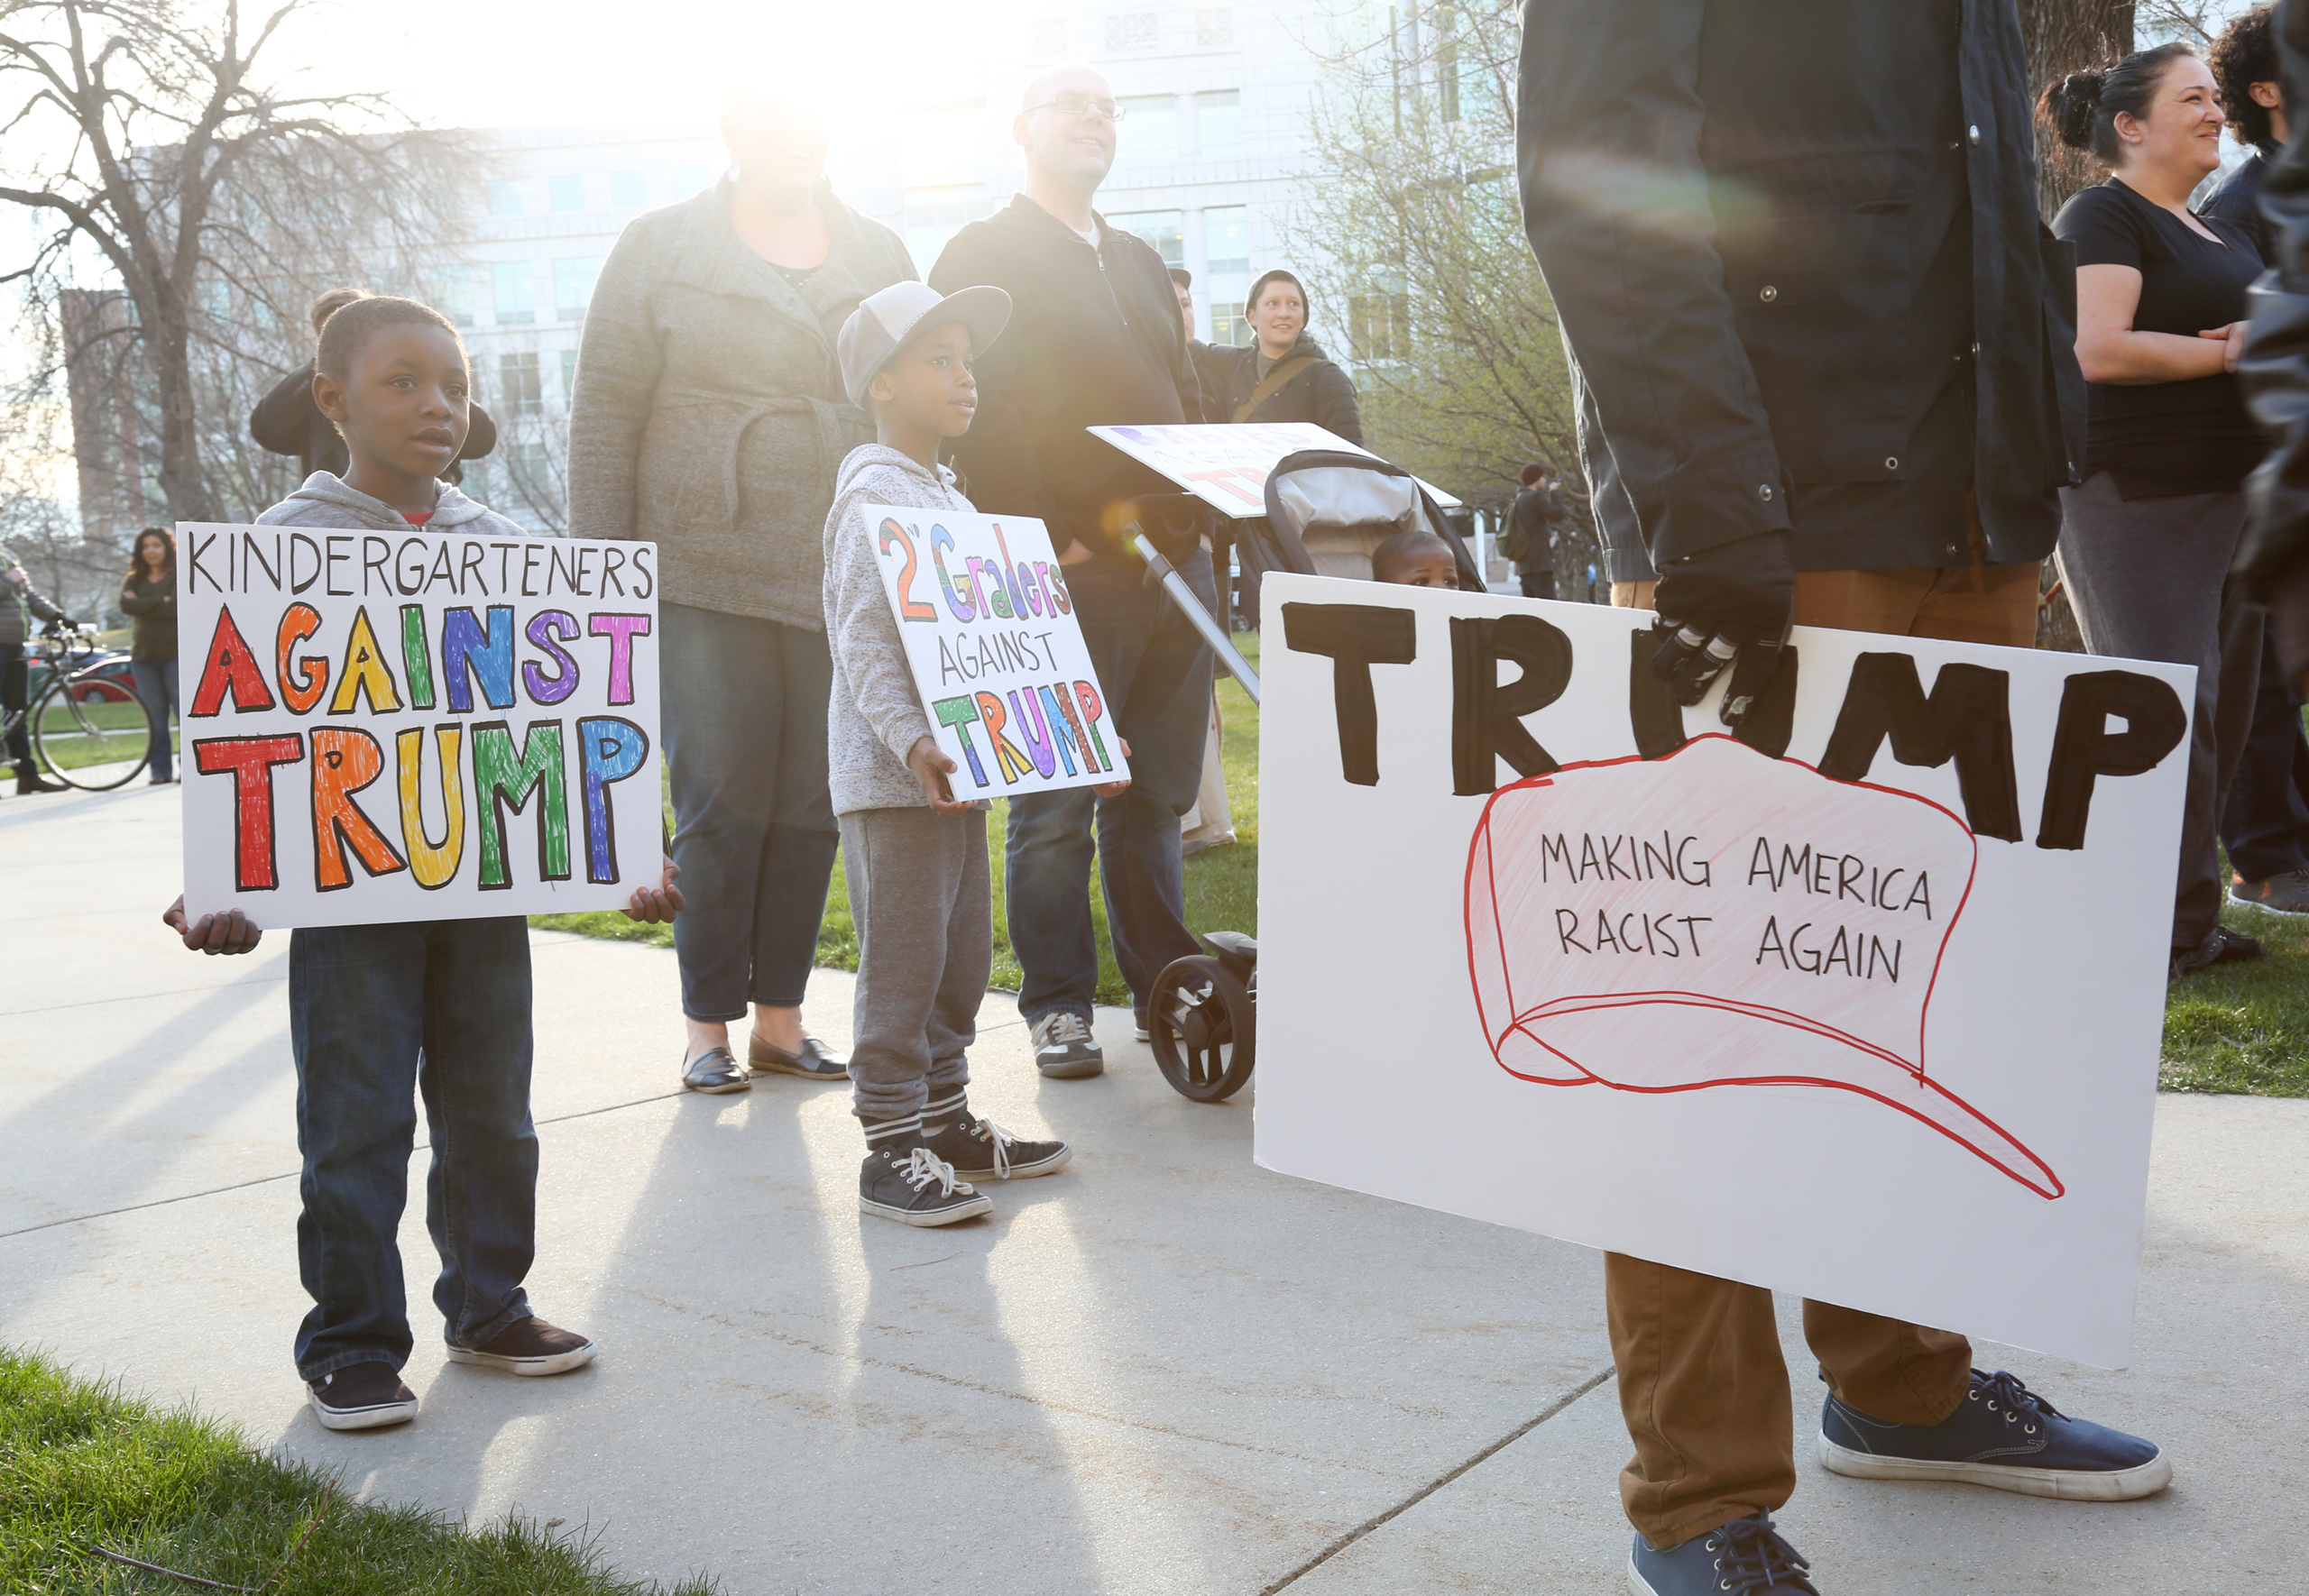 Brothers Noah, left and Owen Burket hold signs as they protest with their family at a rally outside the Infinity Events Center in Salt Lake City, where Republican Presidential candidate Donald Trump held a campaign rally on March 18, 2016.